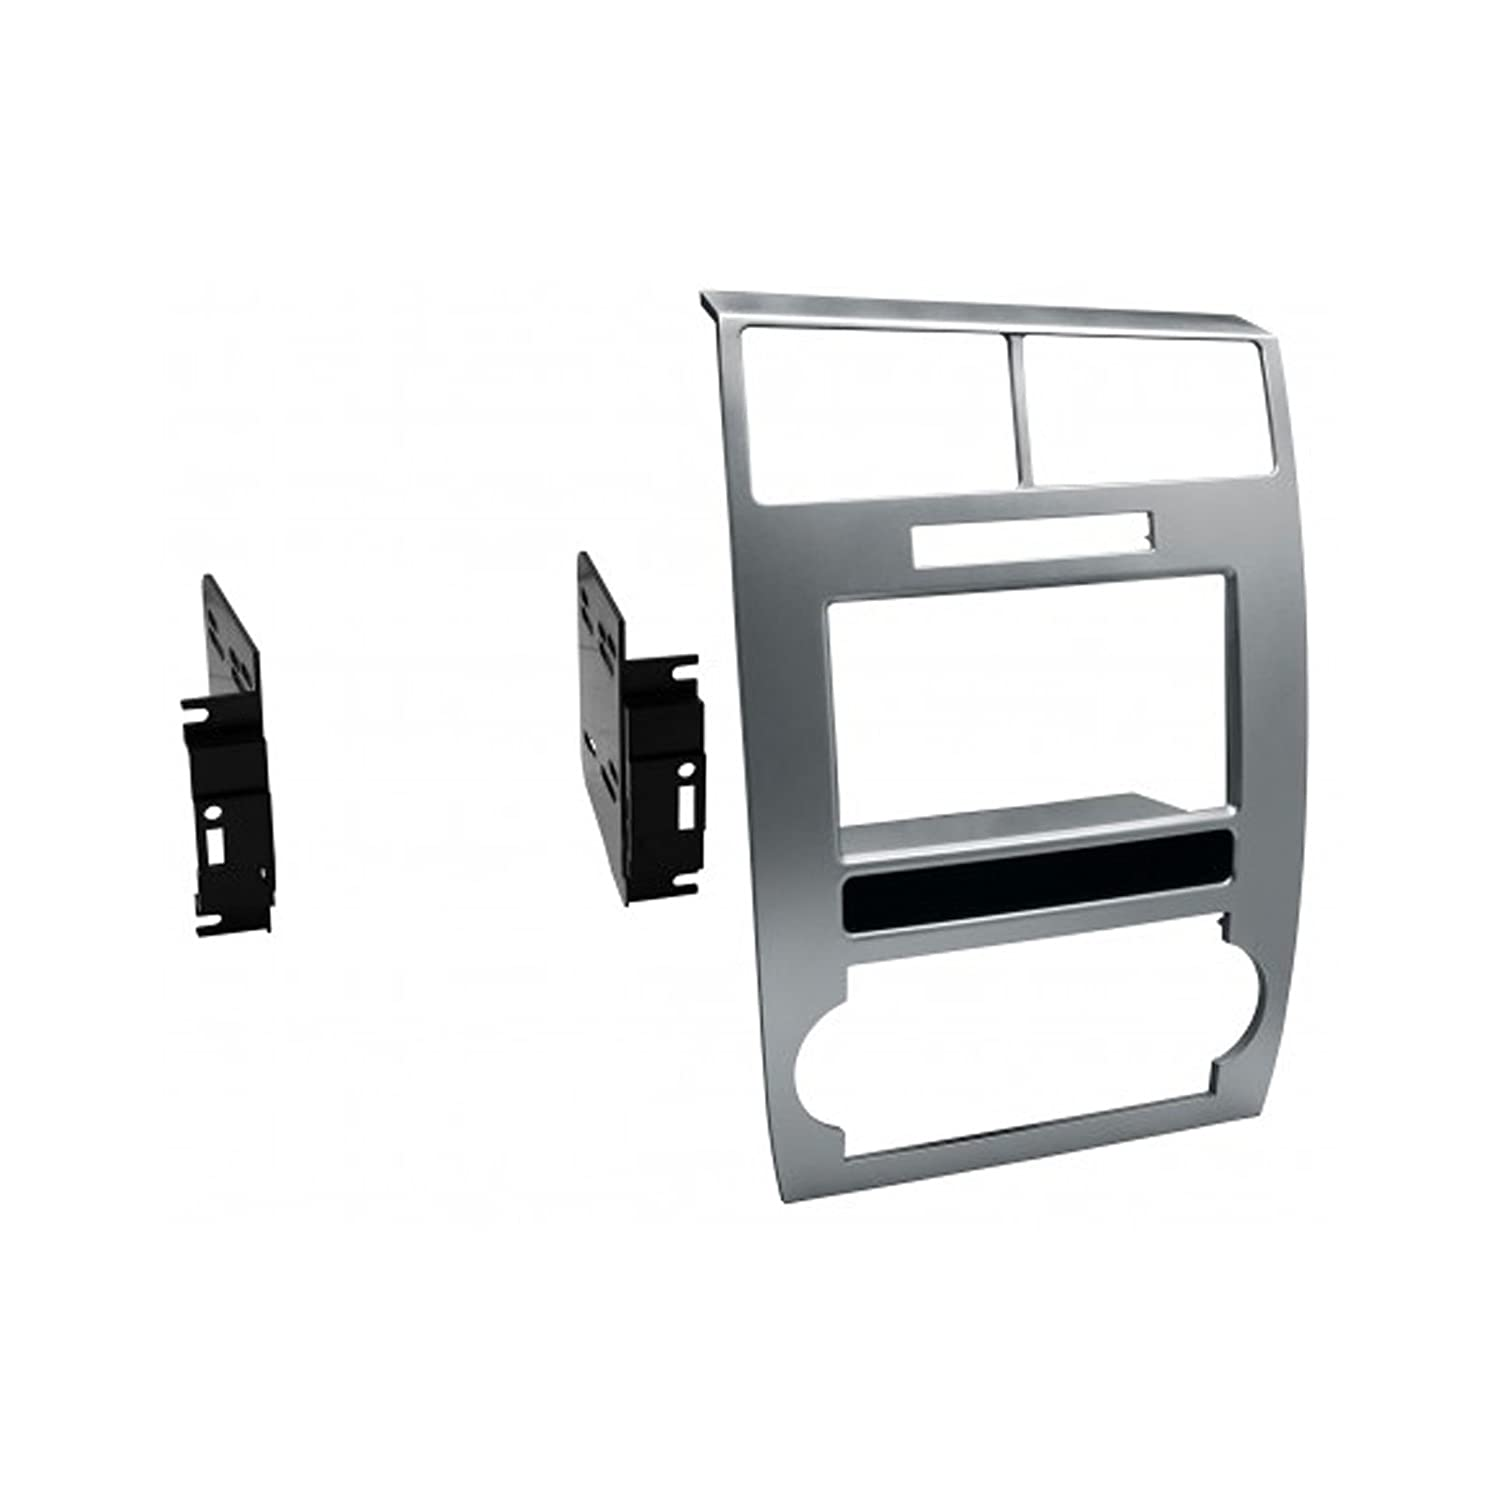 American International CDK639S Double DIN Dash Panel Kit for 2006-2007 Dodge Charger and 2005-2007 Dodge Magnum